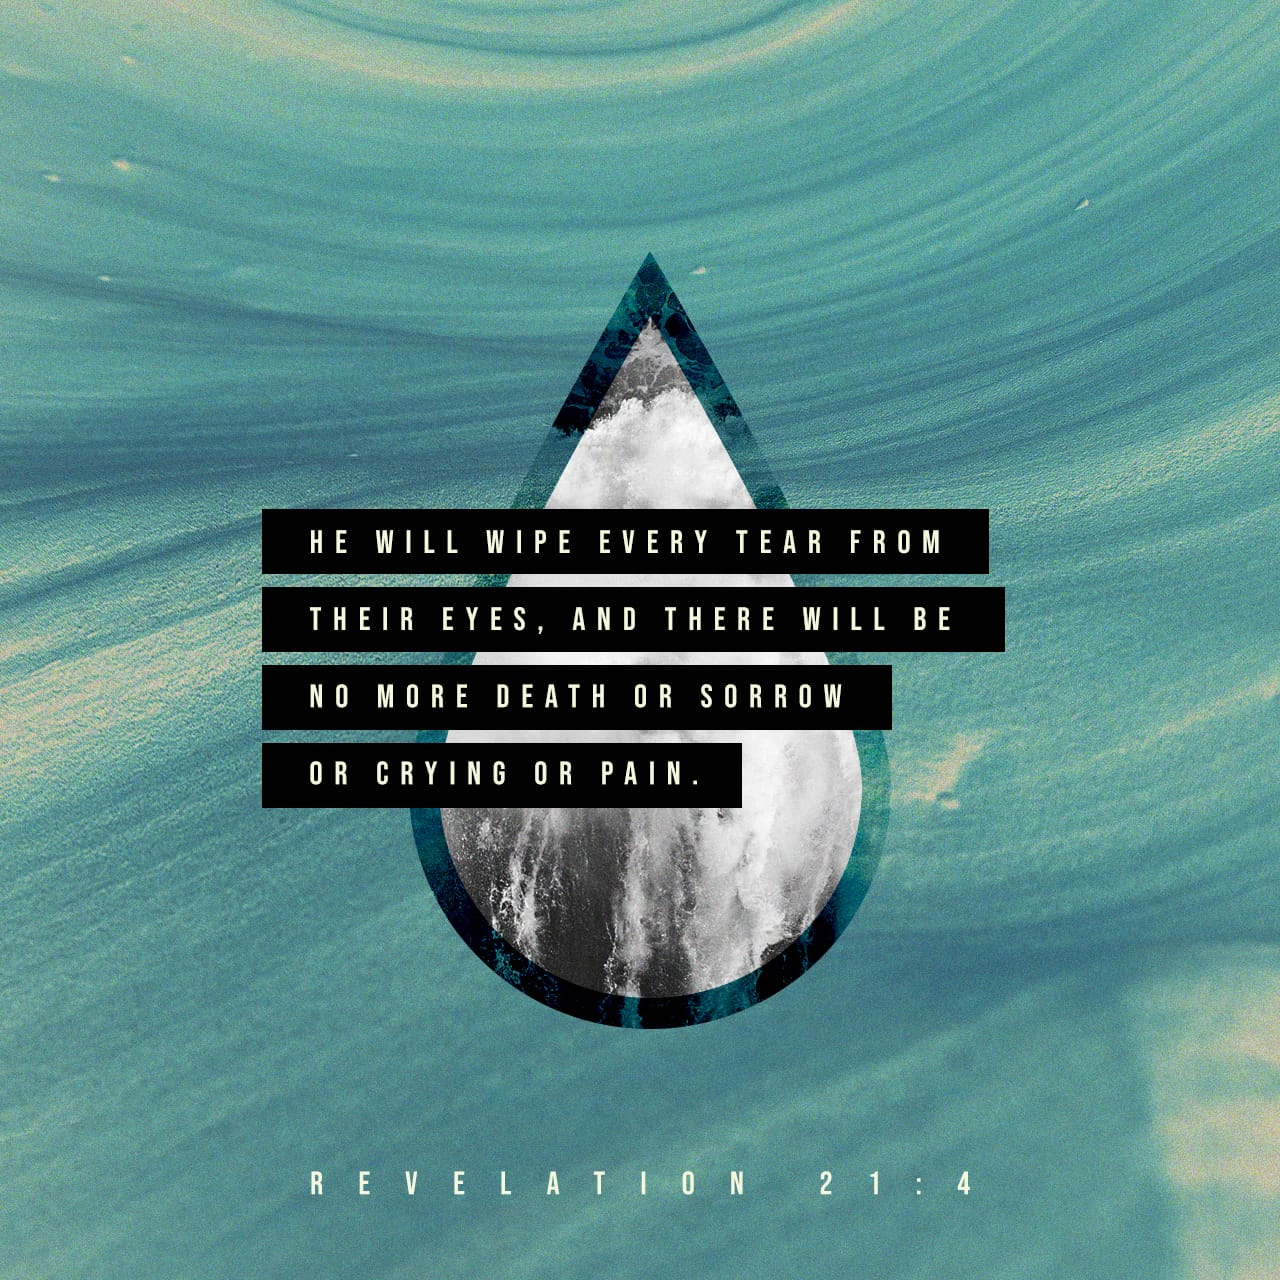 """Revelation 21:4 'He will wipe every tear from their eyes. There will be no  more death' or mourning or crying or pain, for the old order of things has  passed away."""" 